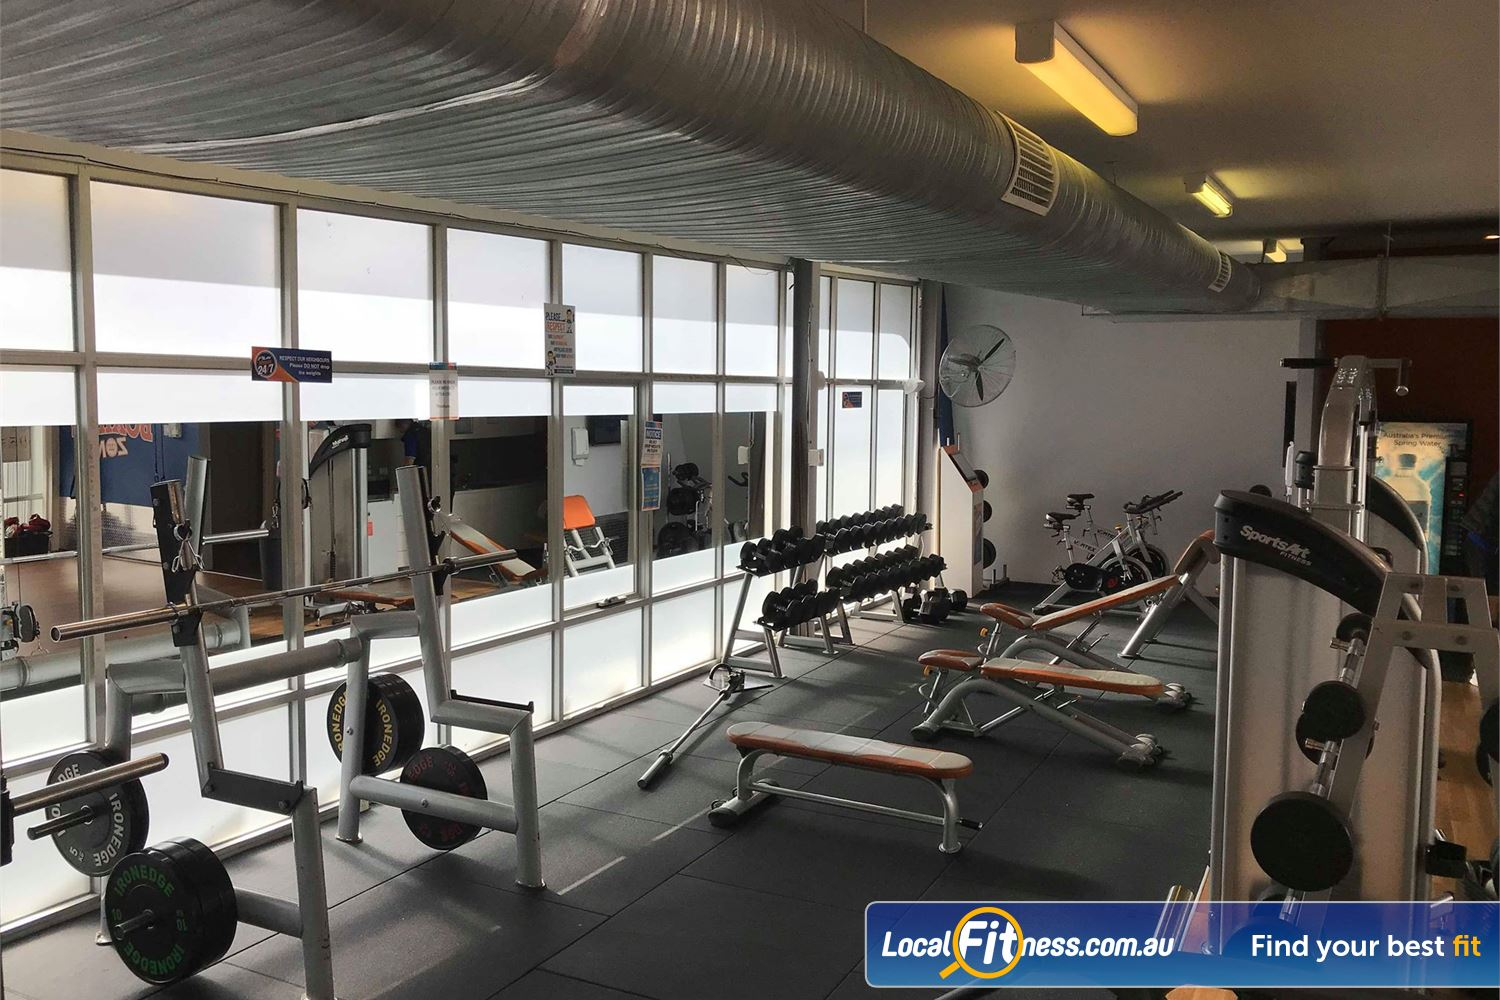 Plus Fitness 24/7 Near Notting Hill The free-weights area in our Oakleigh gym provides a perfect strength training environment.